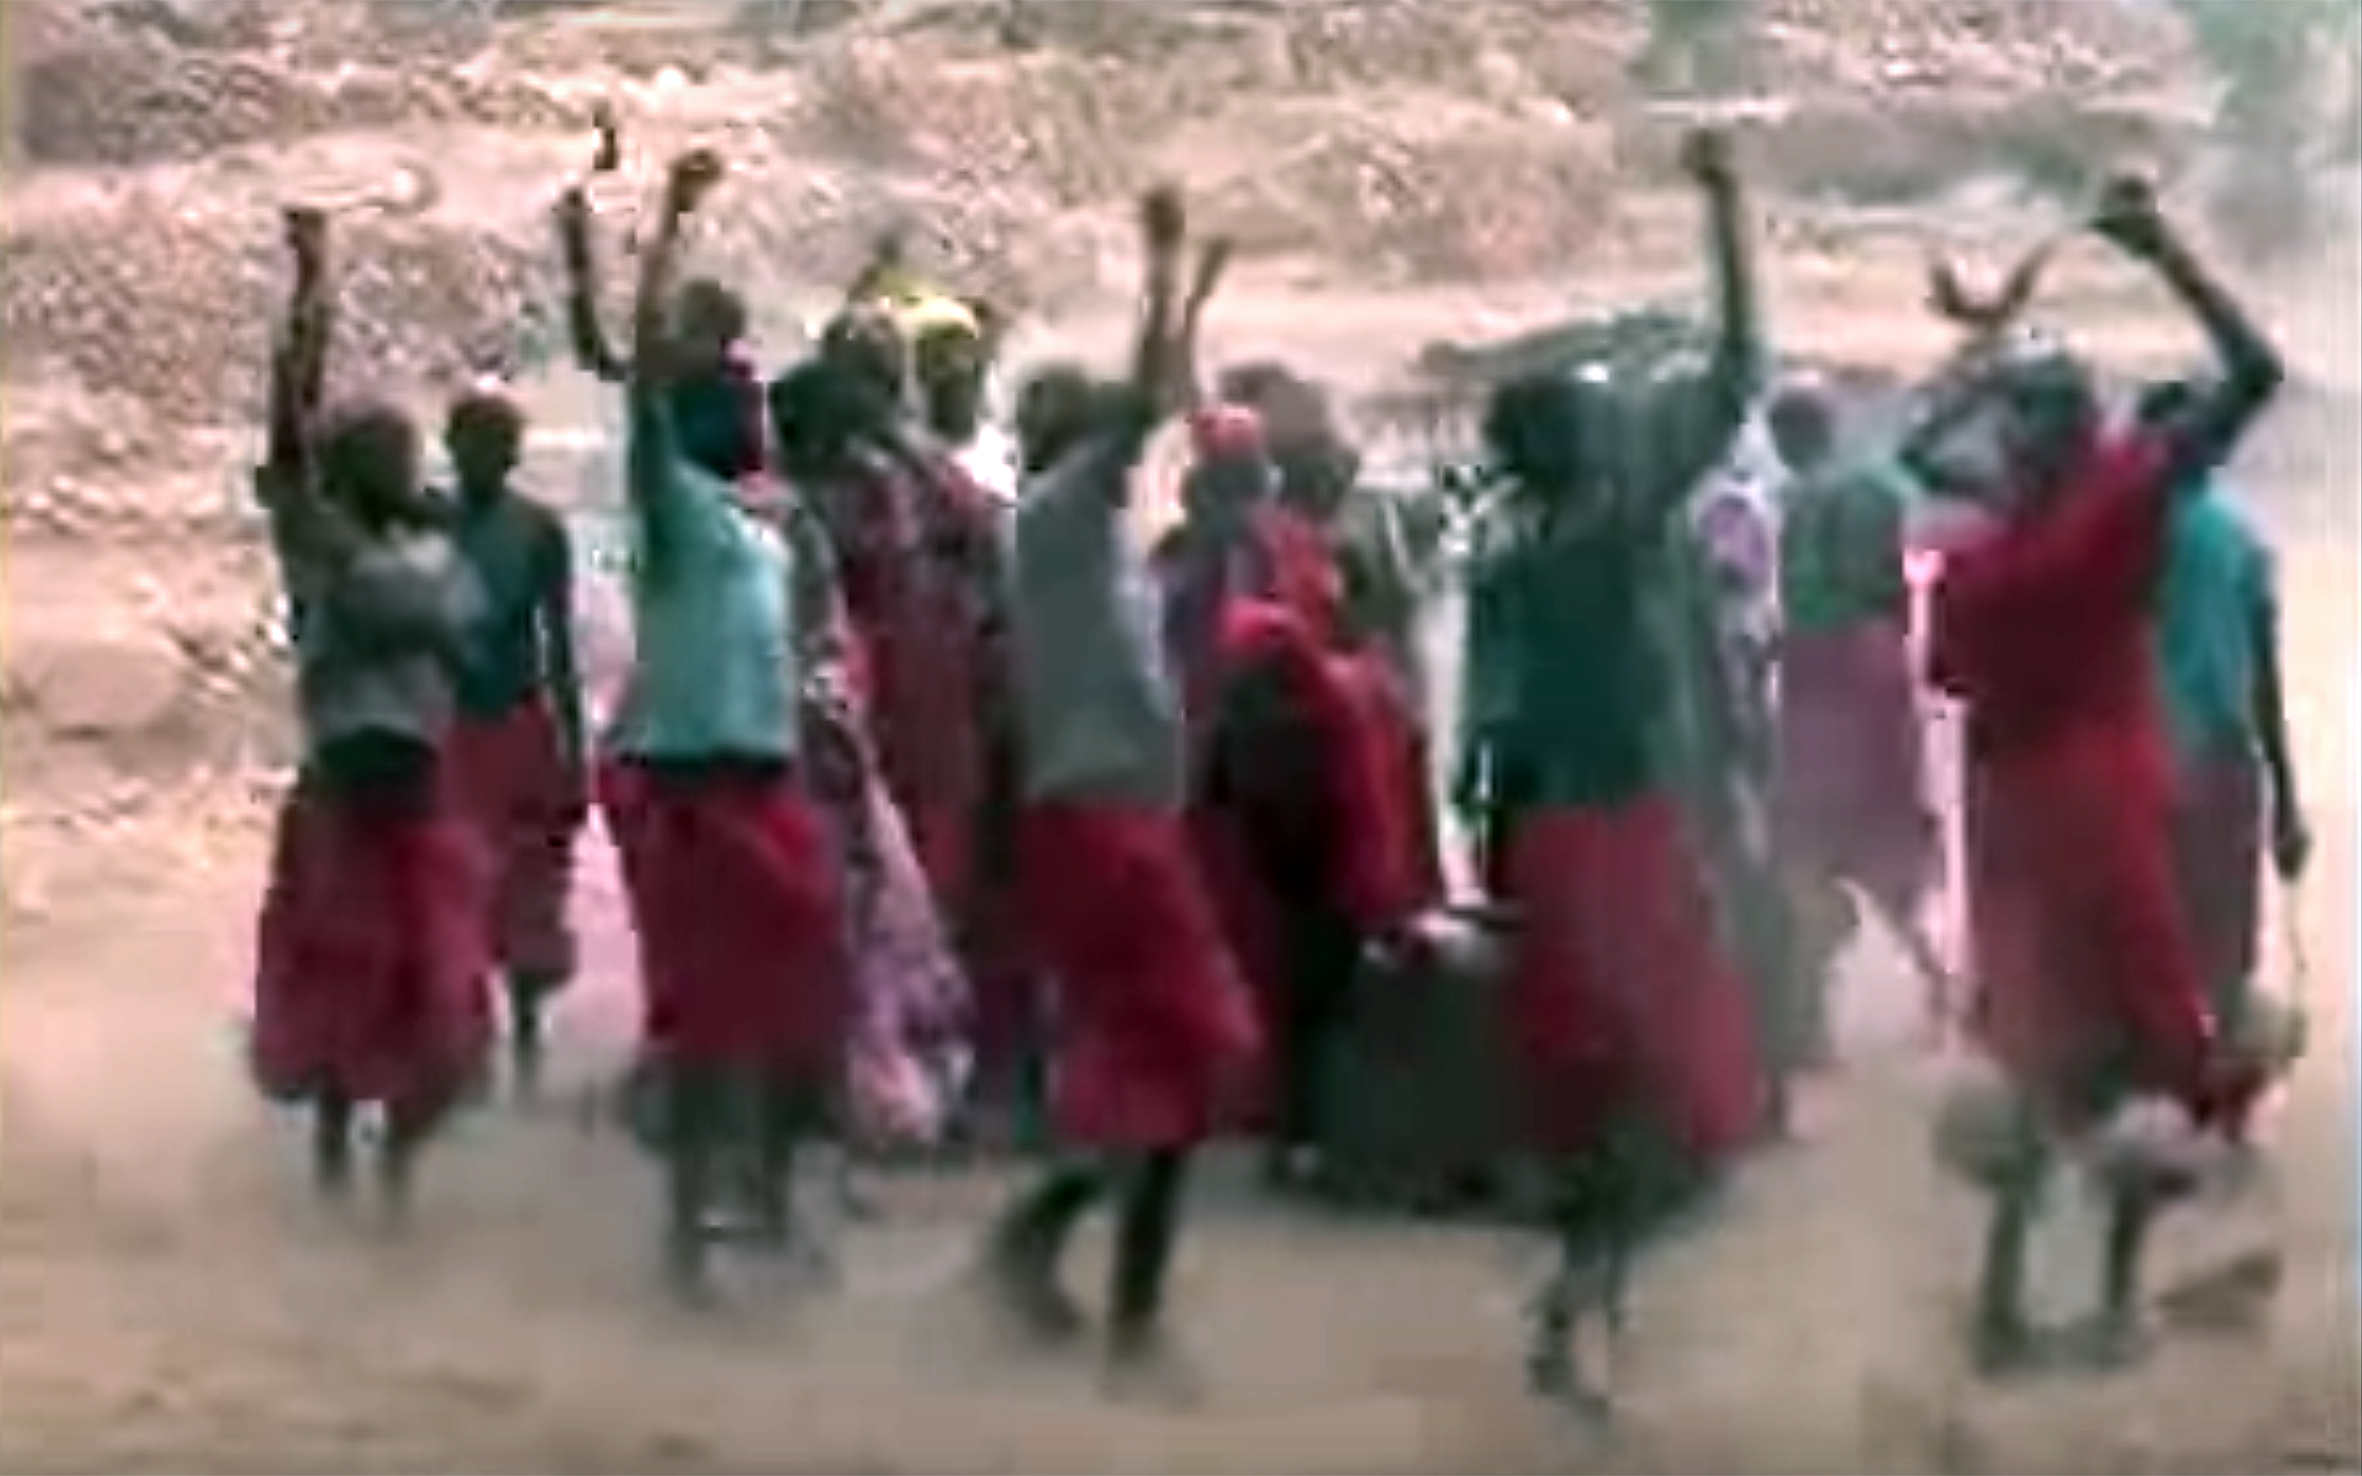 664.OUDJILA / Cameroon - OUDJILA is a traditional dance from far North of Cameroon.